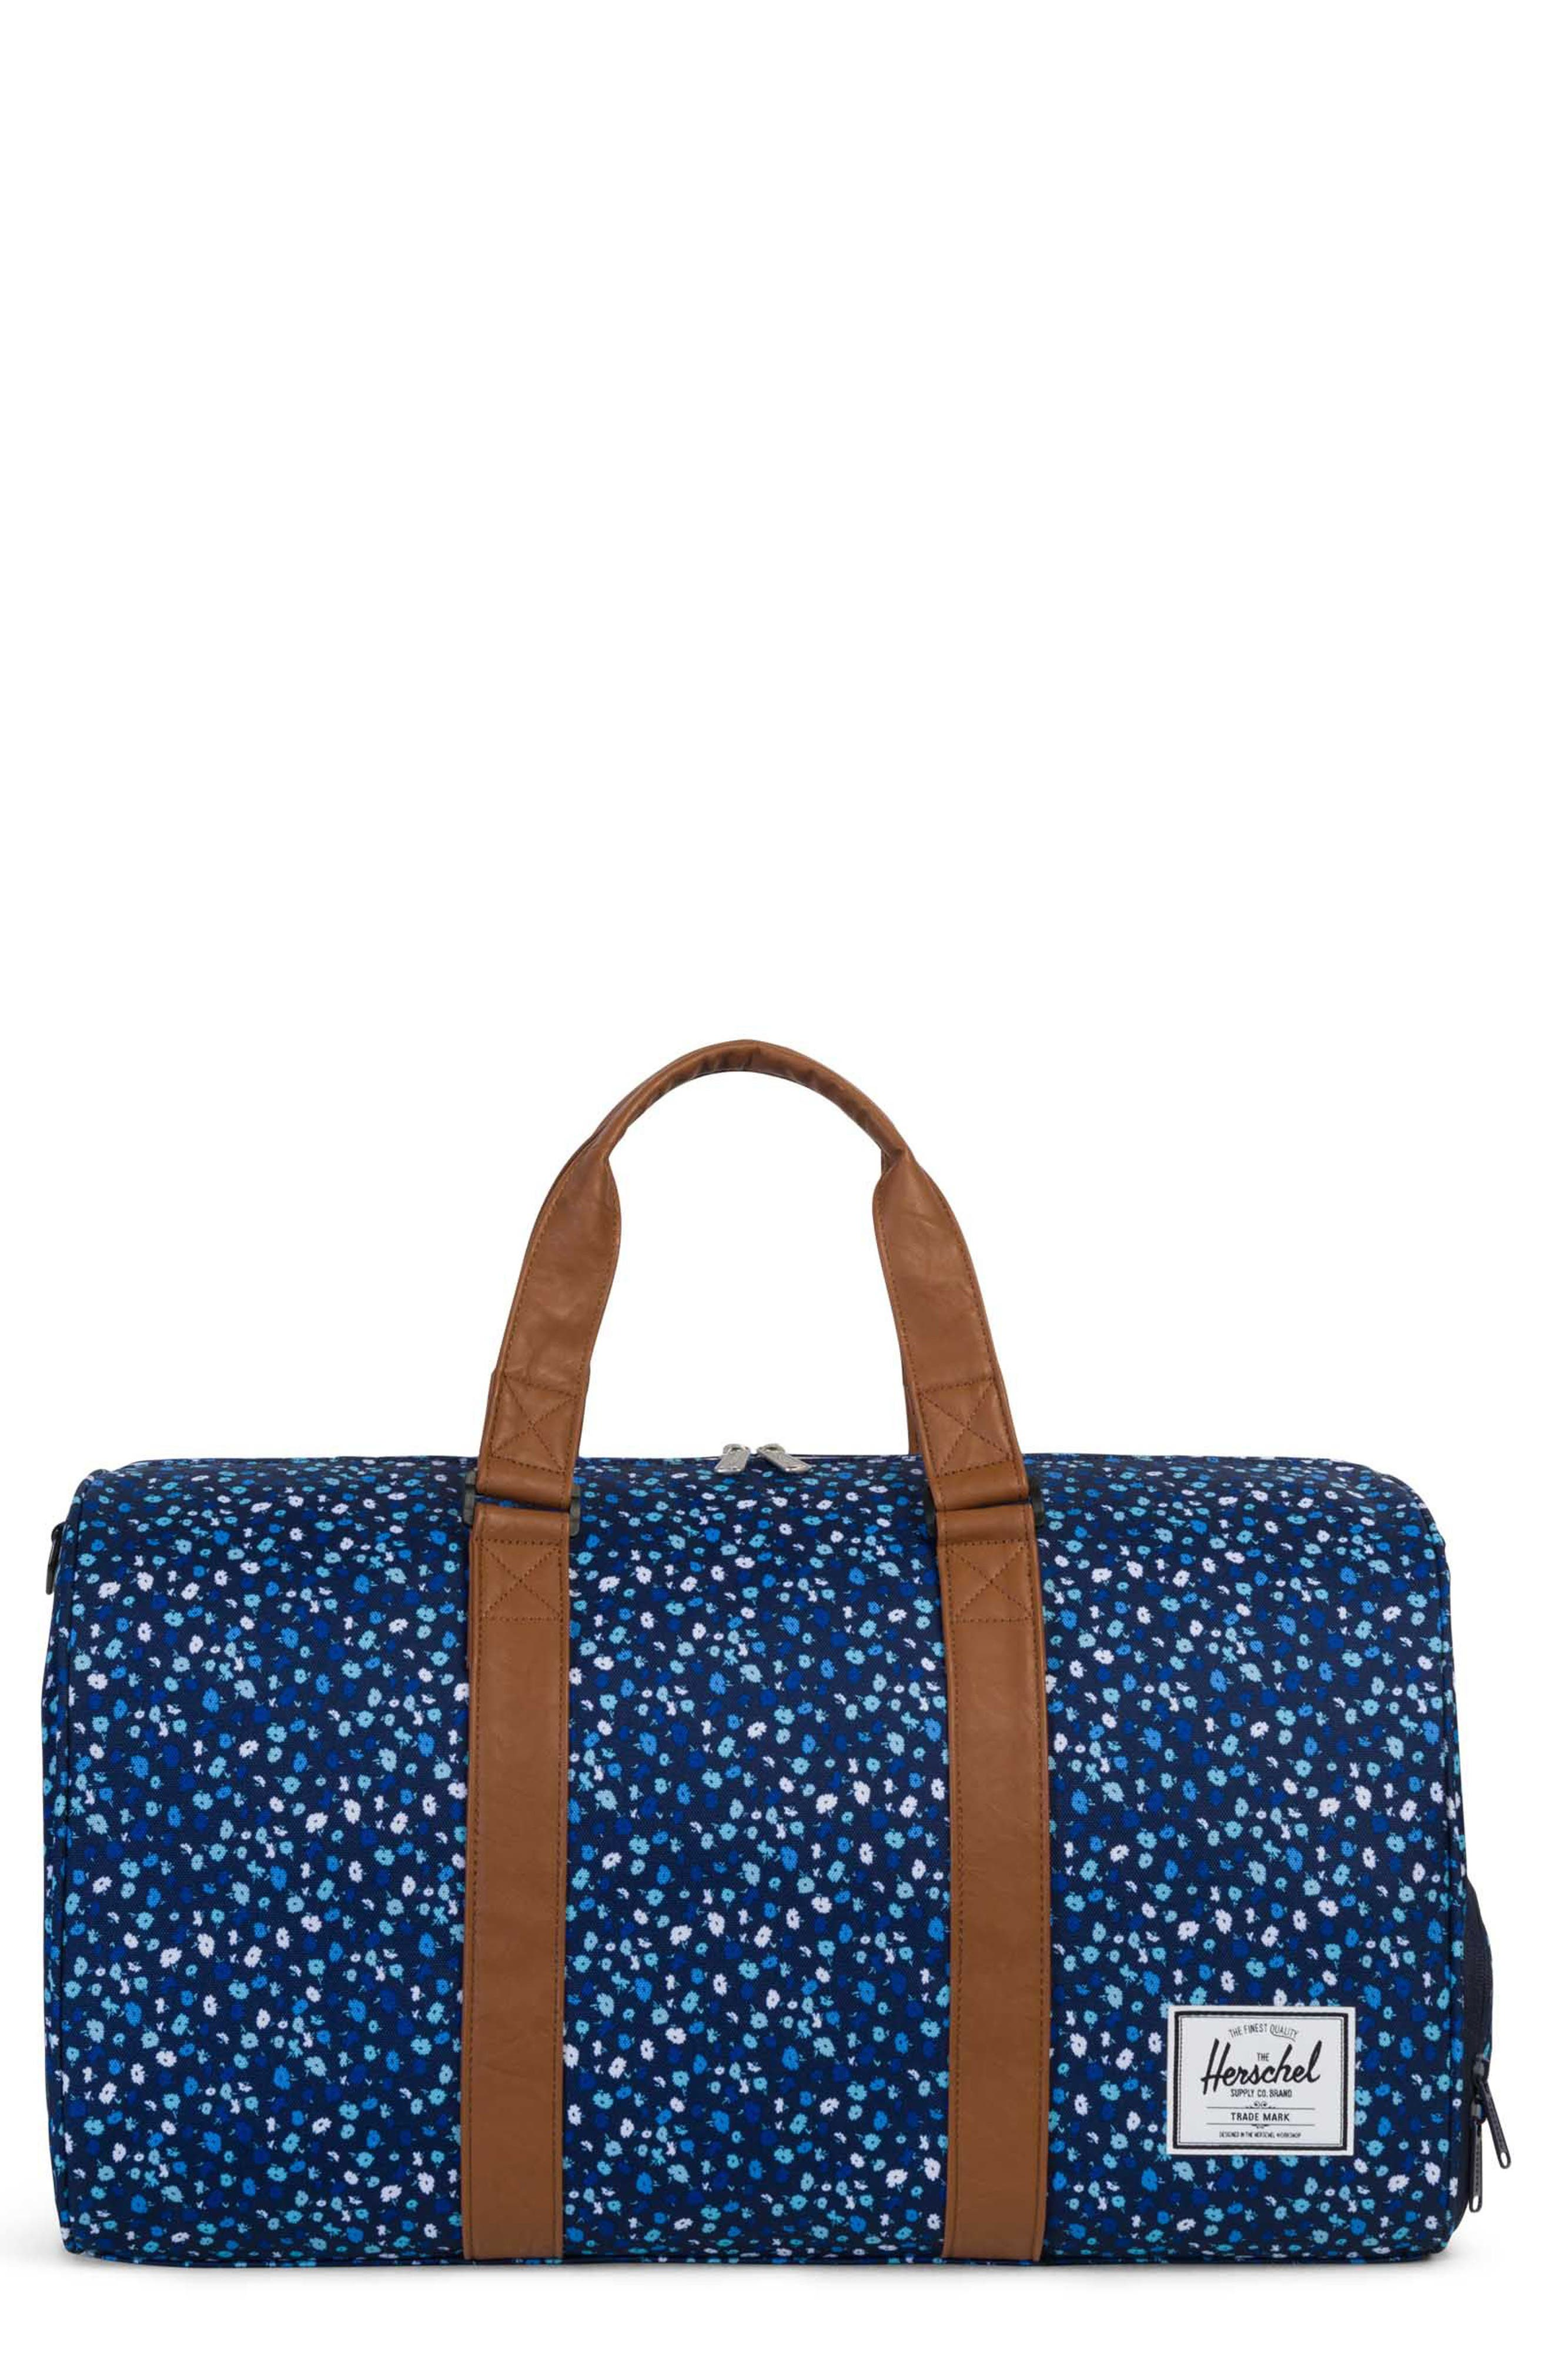 Novel Floral Pattern Duffel Bag,                         Main,                         color, Peacoat Mini Floral